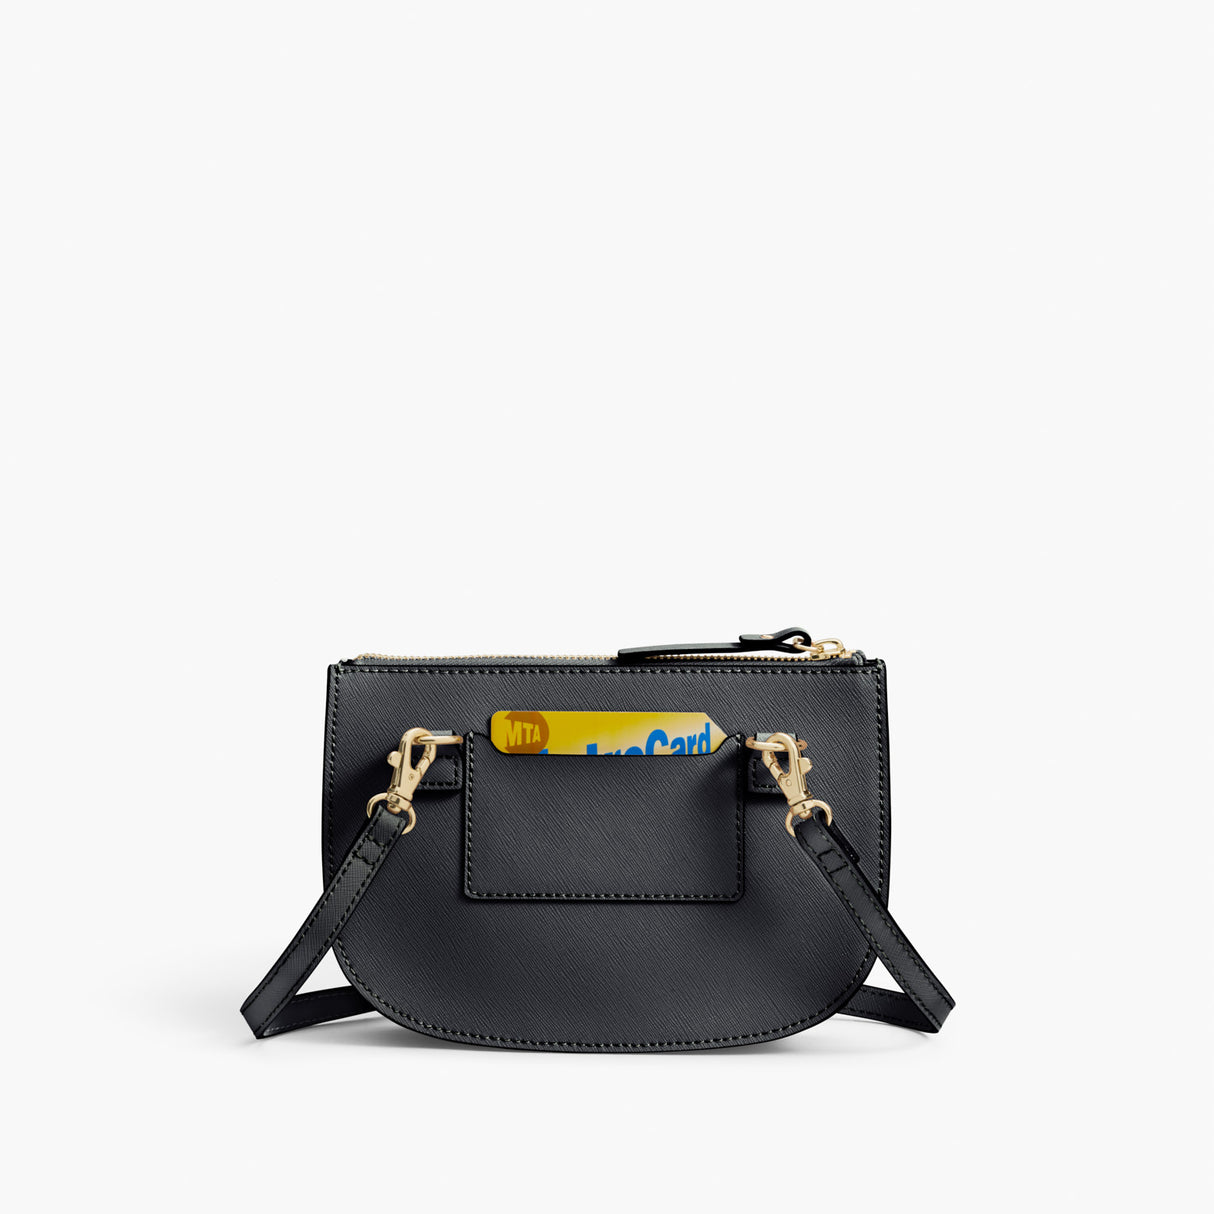 Back Card Slot - Waverley 2 - Saffiano Leather - Dark Grey / Gold / Grey - Crossbody Bag - Lo & Sons